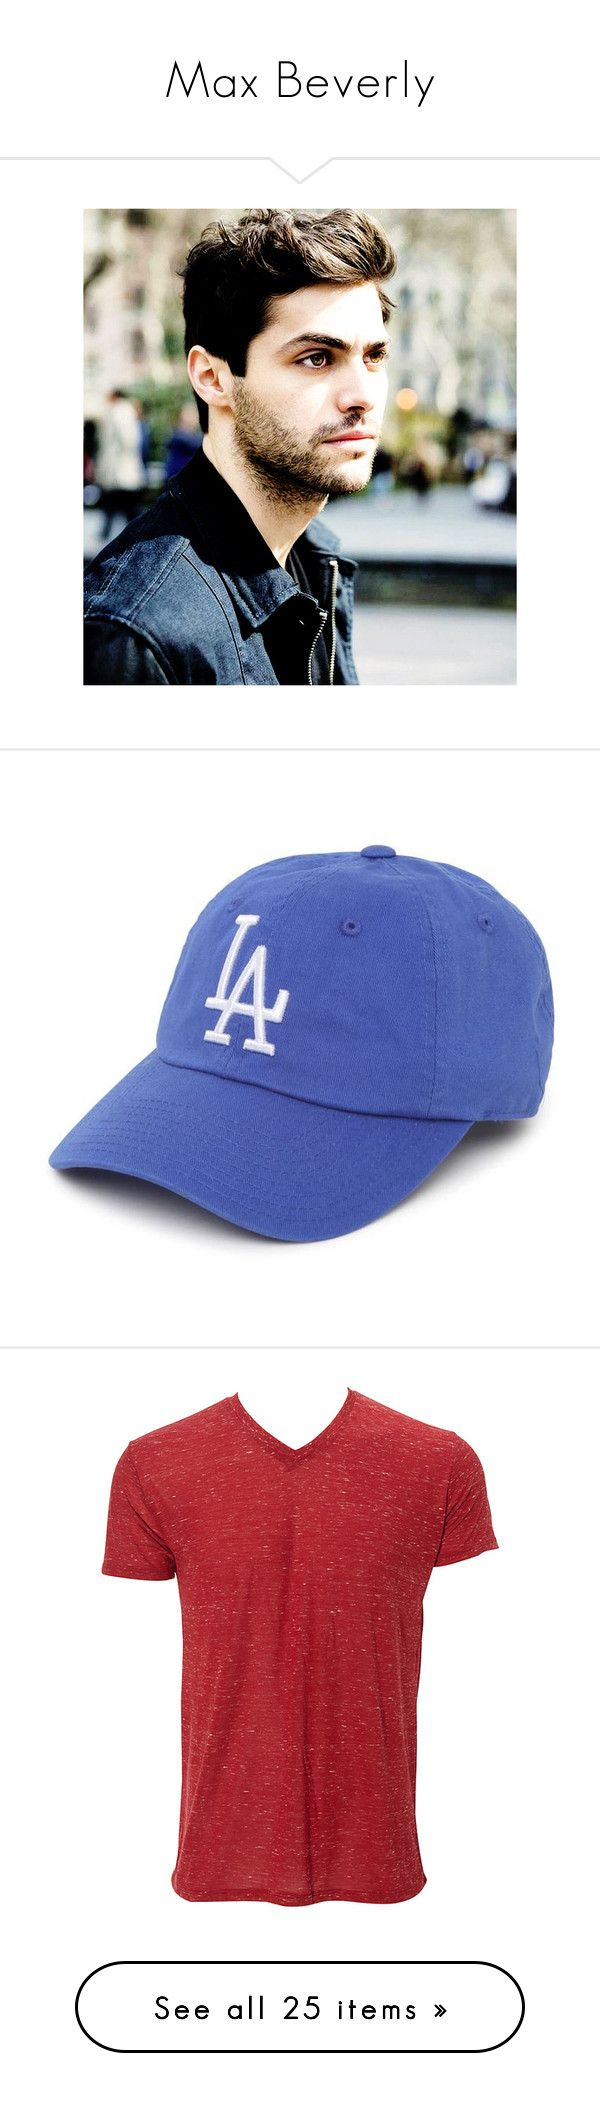 """Max Beverly"" by pianokeys2013 on Polyvore featuring accessories, hats, blue, dodgers baseball hat, baseball caps, la dodgers hat, ball cap hats, blue hat, men's fashion and men's clothing"